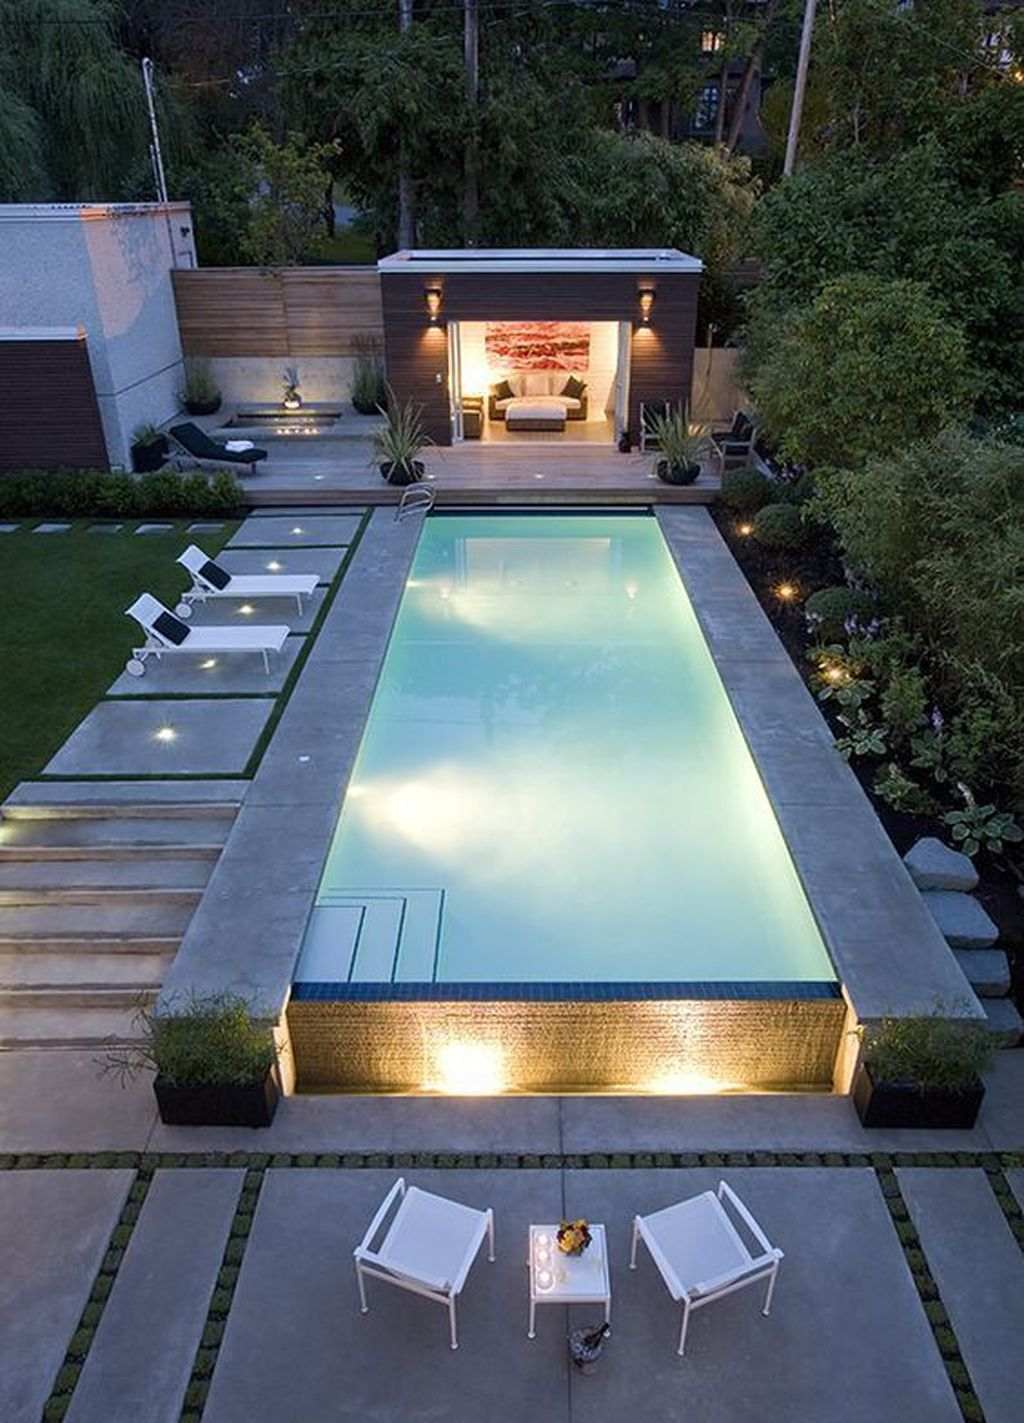 Admirable Small Swimming Pool Designs Ideas 20